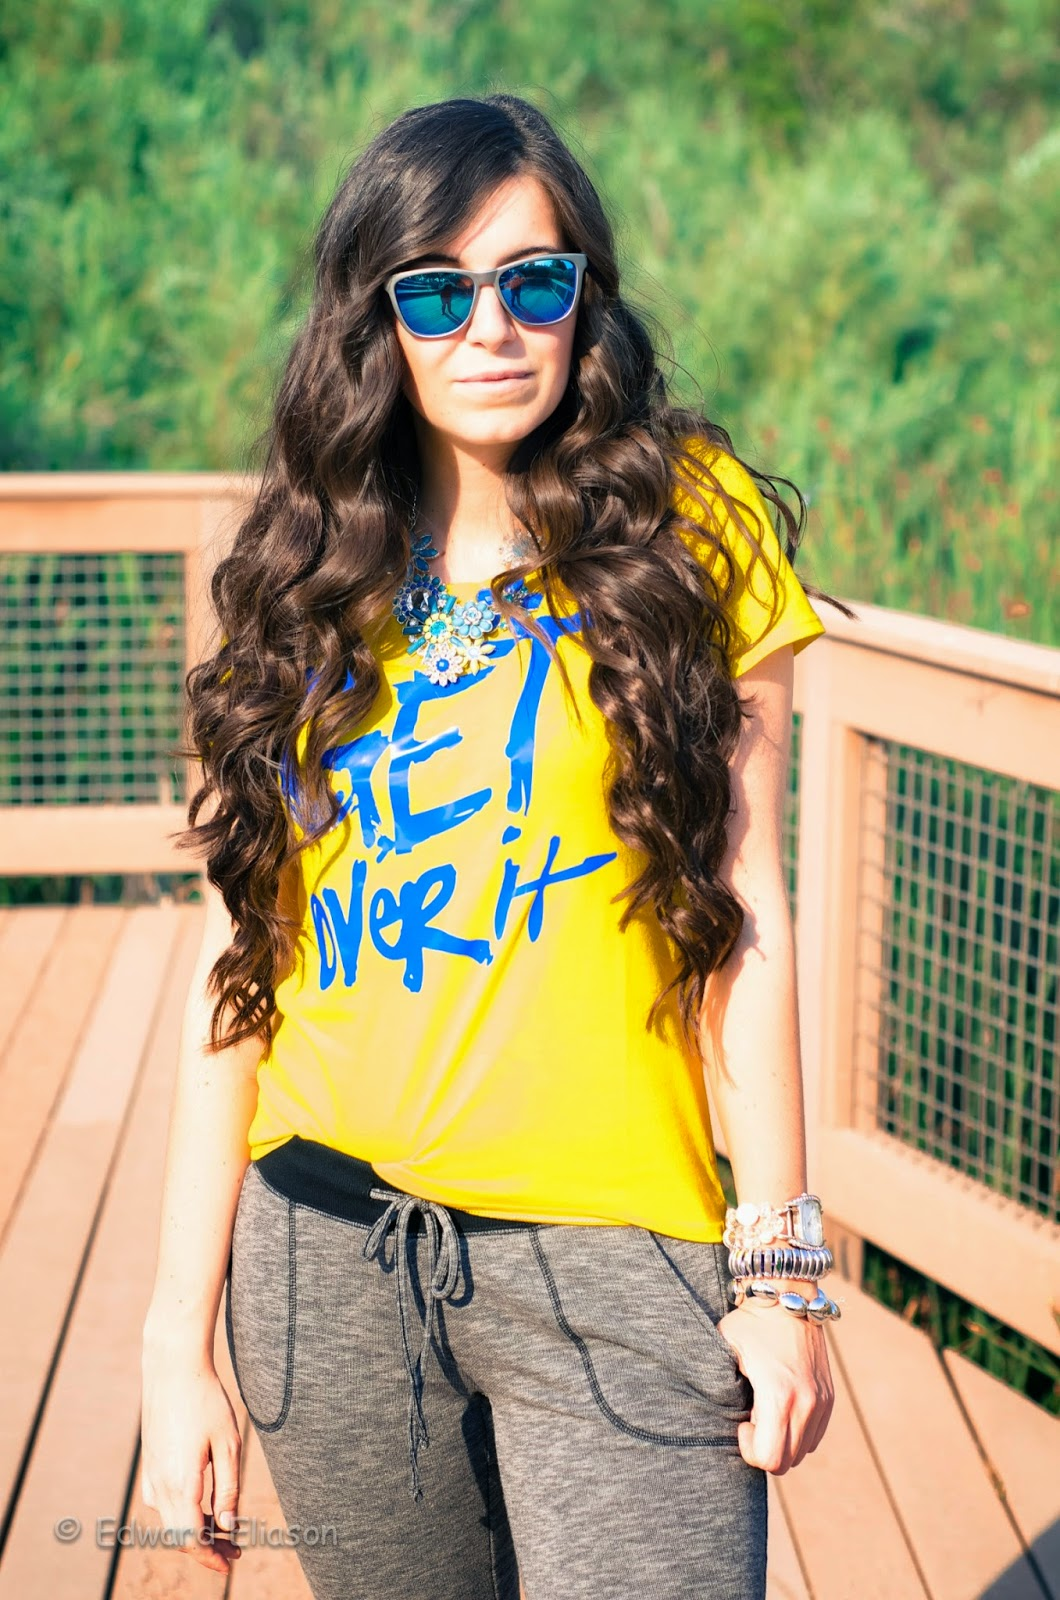 sunglasses, kameleonz sunglasses, lifes a beach, giveaway, slouchy outfit, casual outfit, sweats outfit, graphic tee outfit, sketchers, jcpenneys, summer time casual, casual summer, casual summer time,